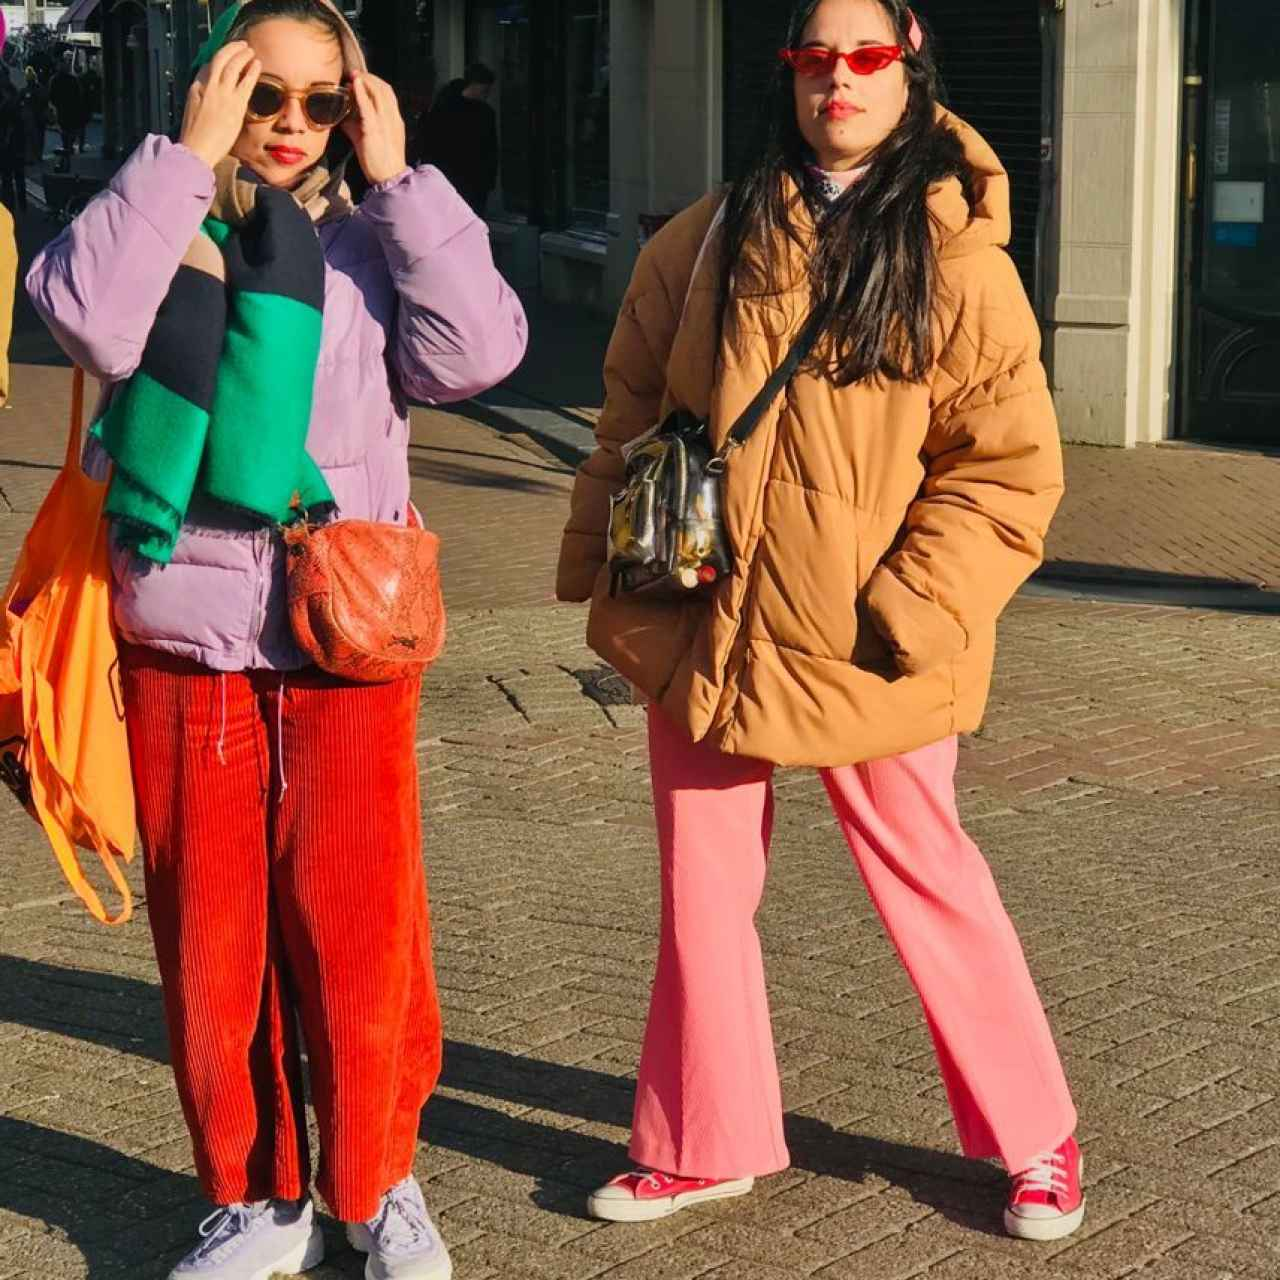 The Torrent sisters with the second-hand clothing style that led them to launch the brand.